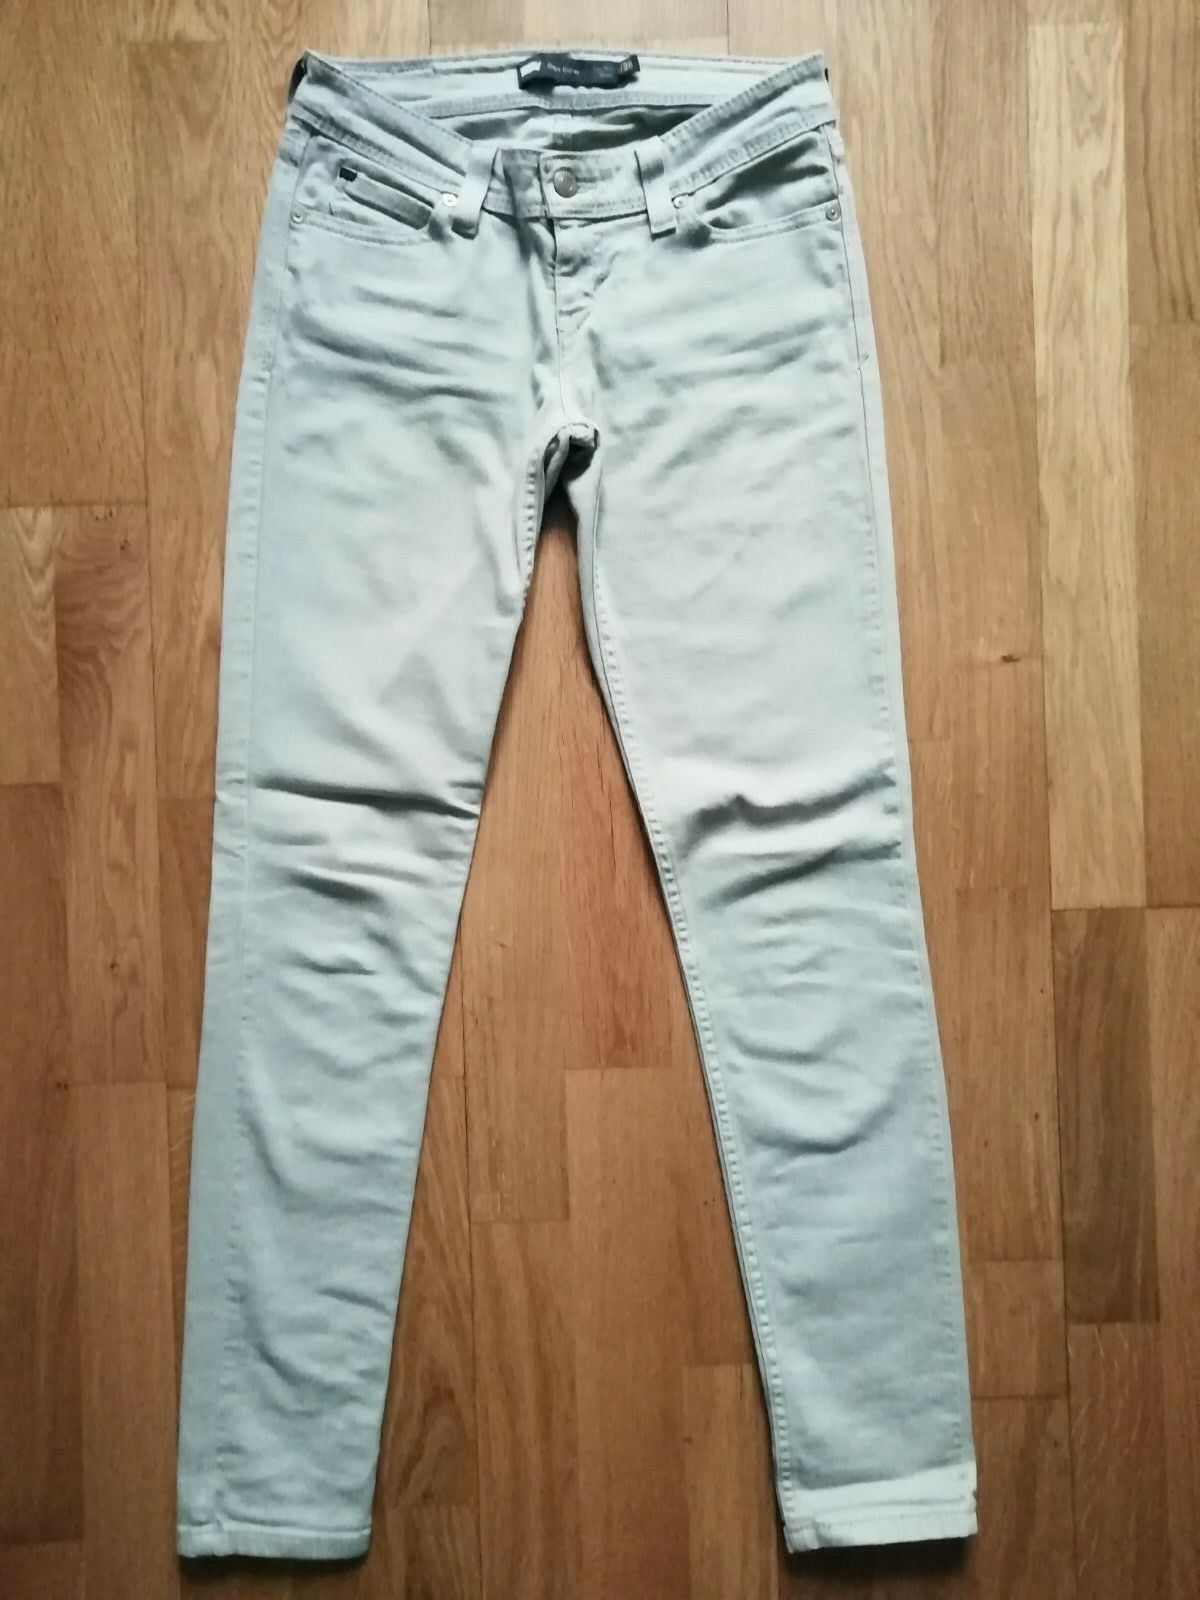 Jean levis skinny demi curve taille 26 neuf